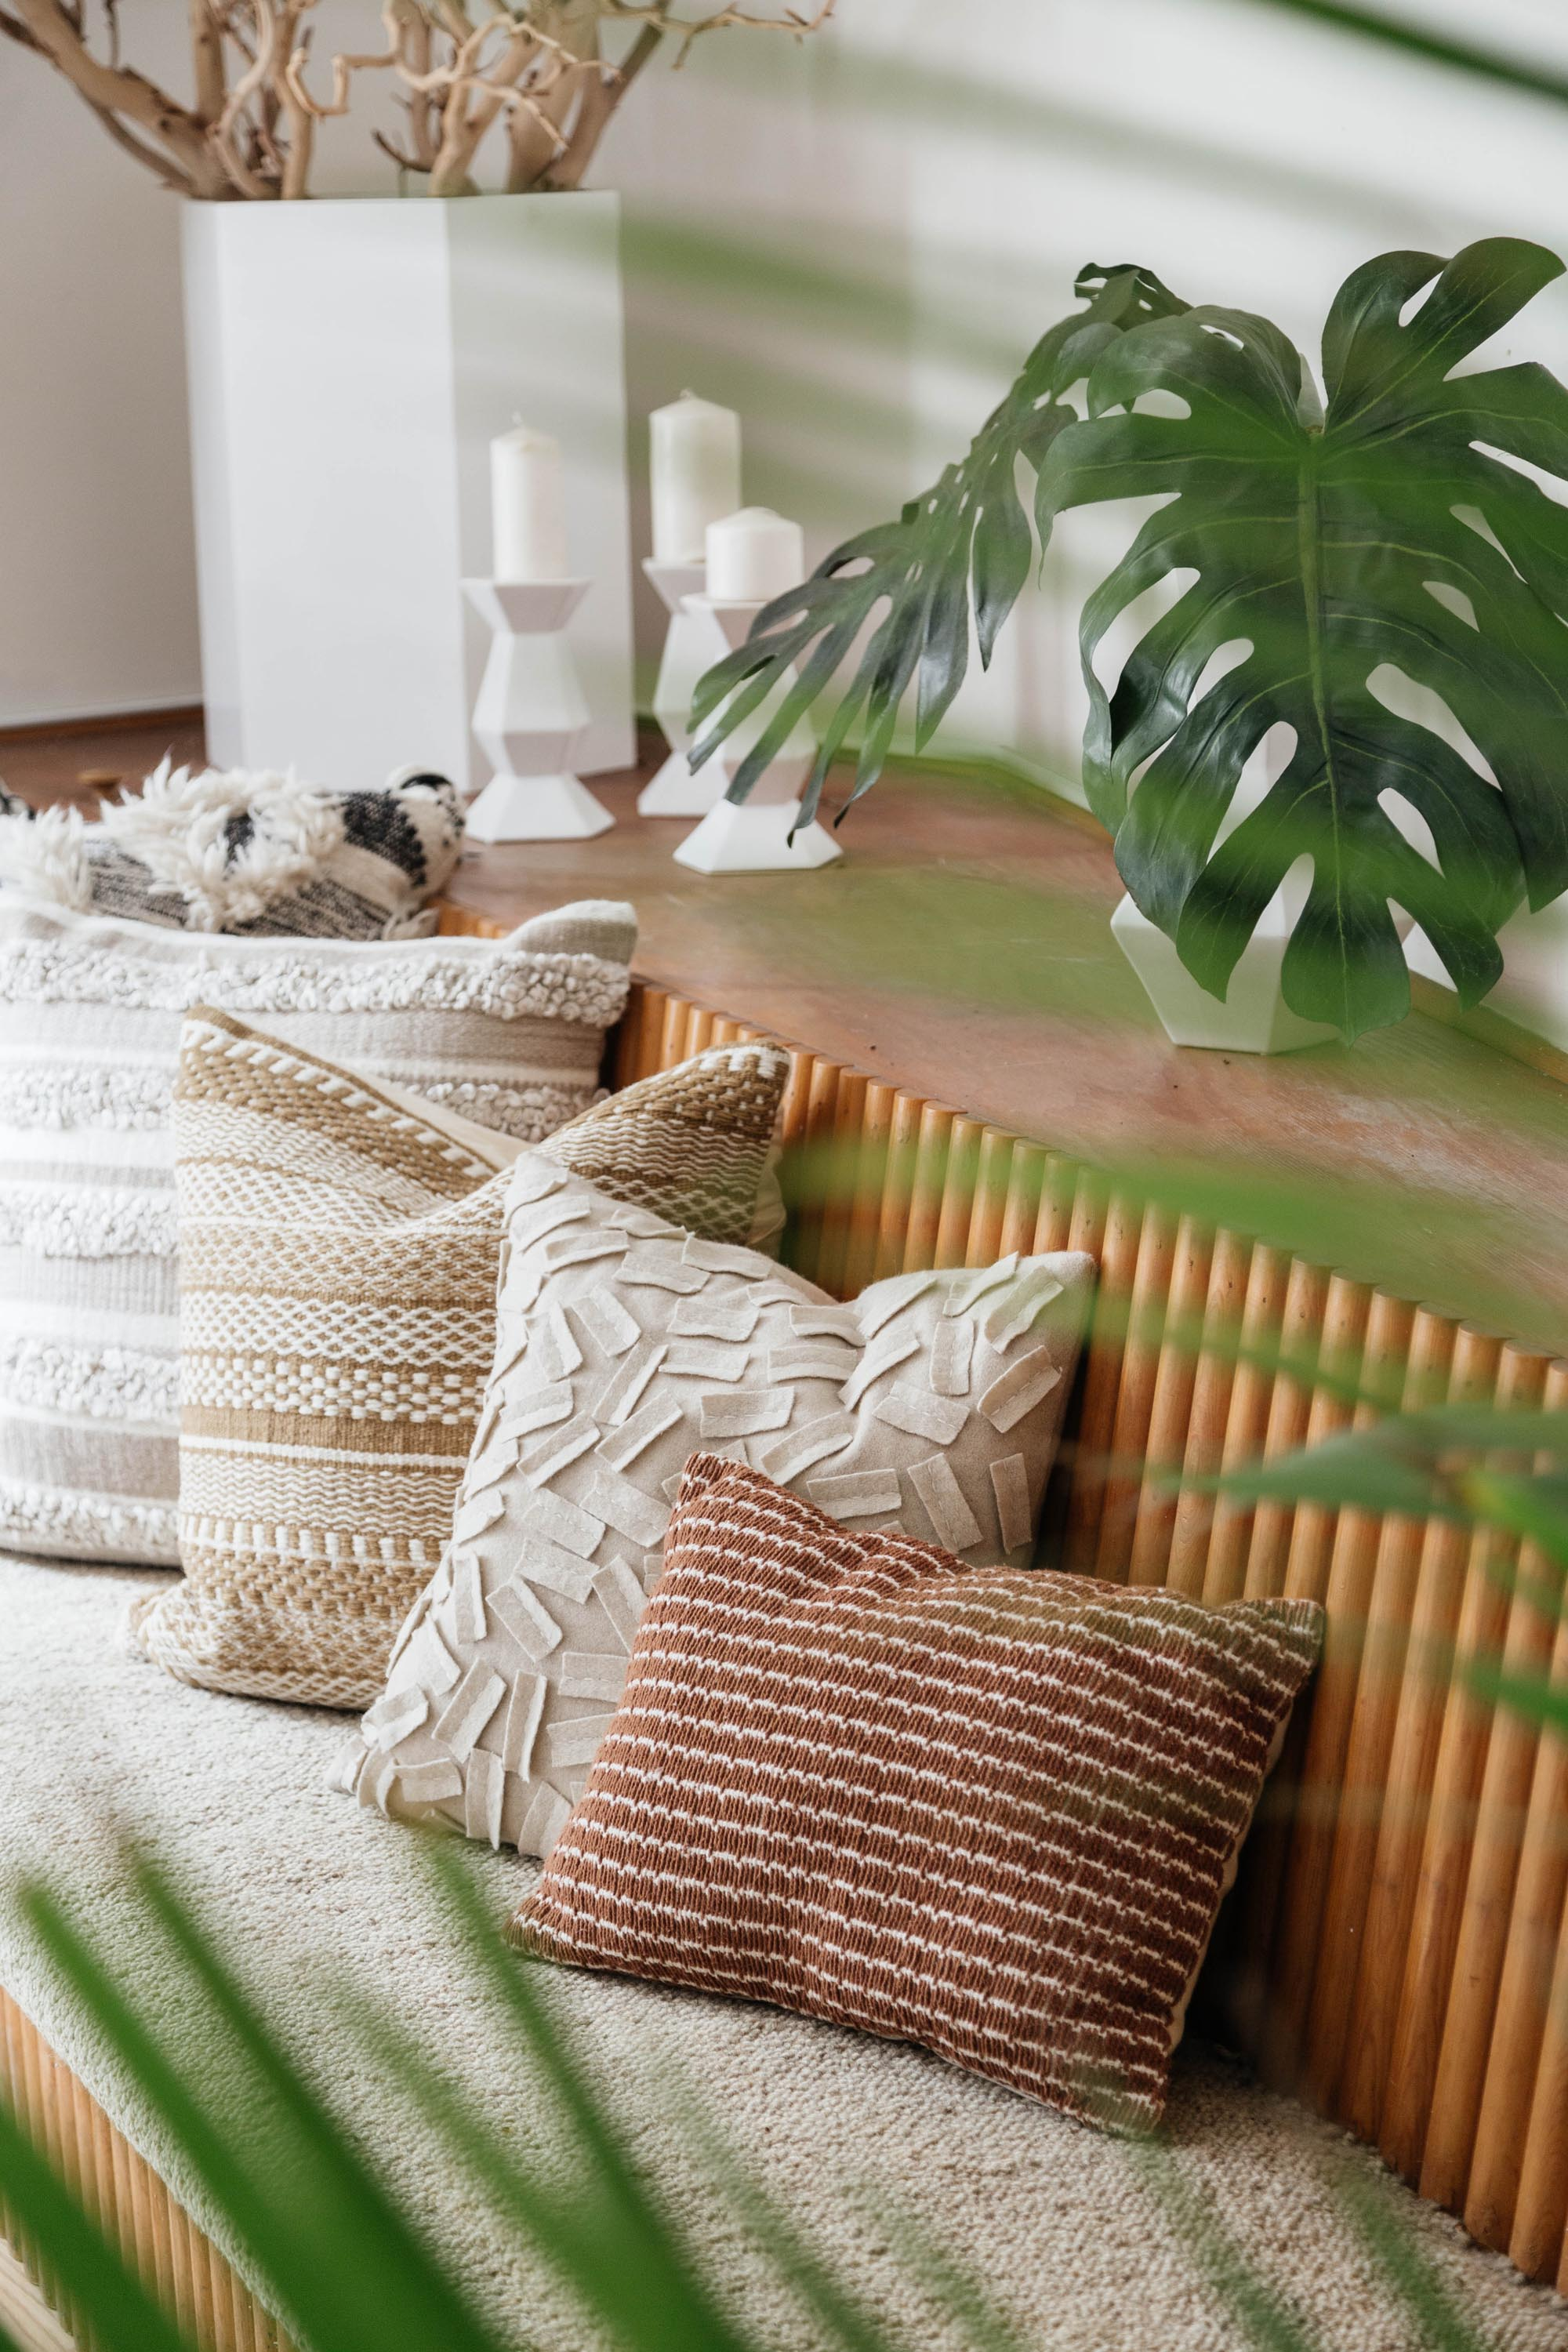 Custom built wooden sectional bench with throw pillows and plants